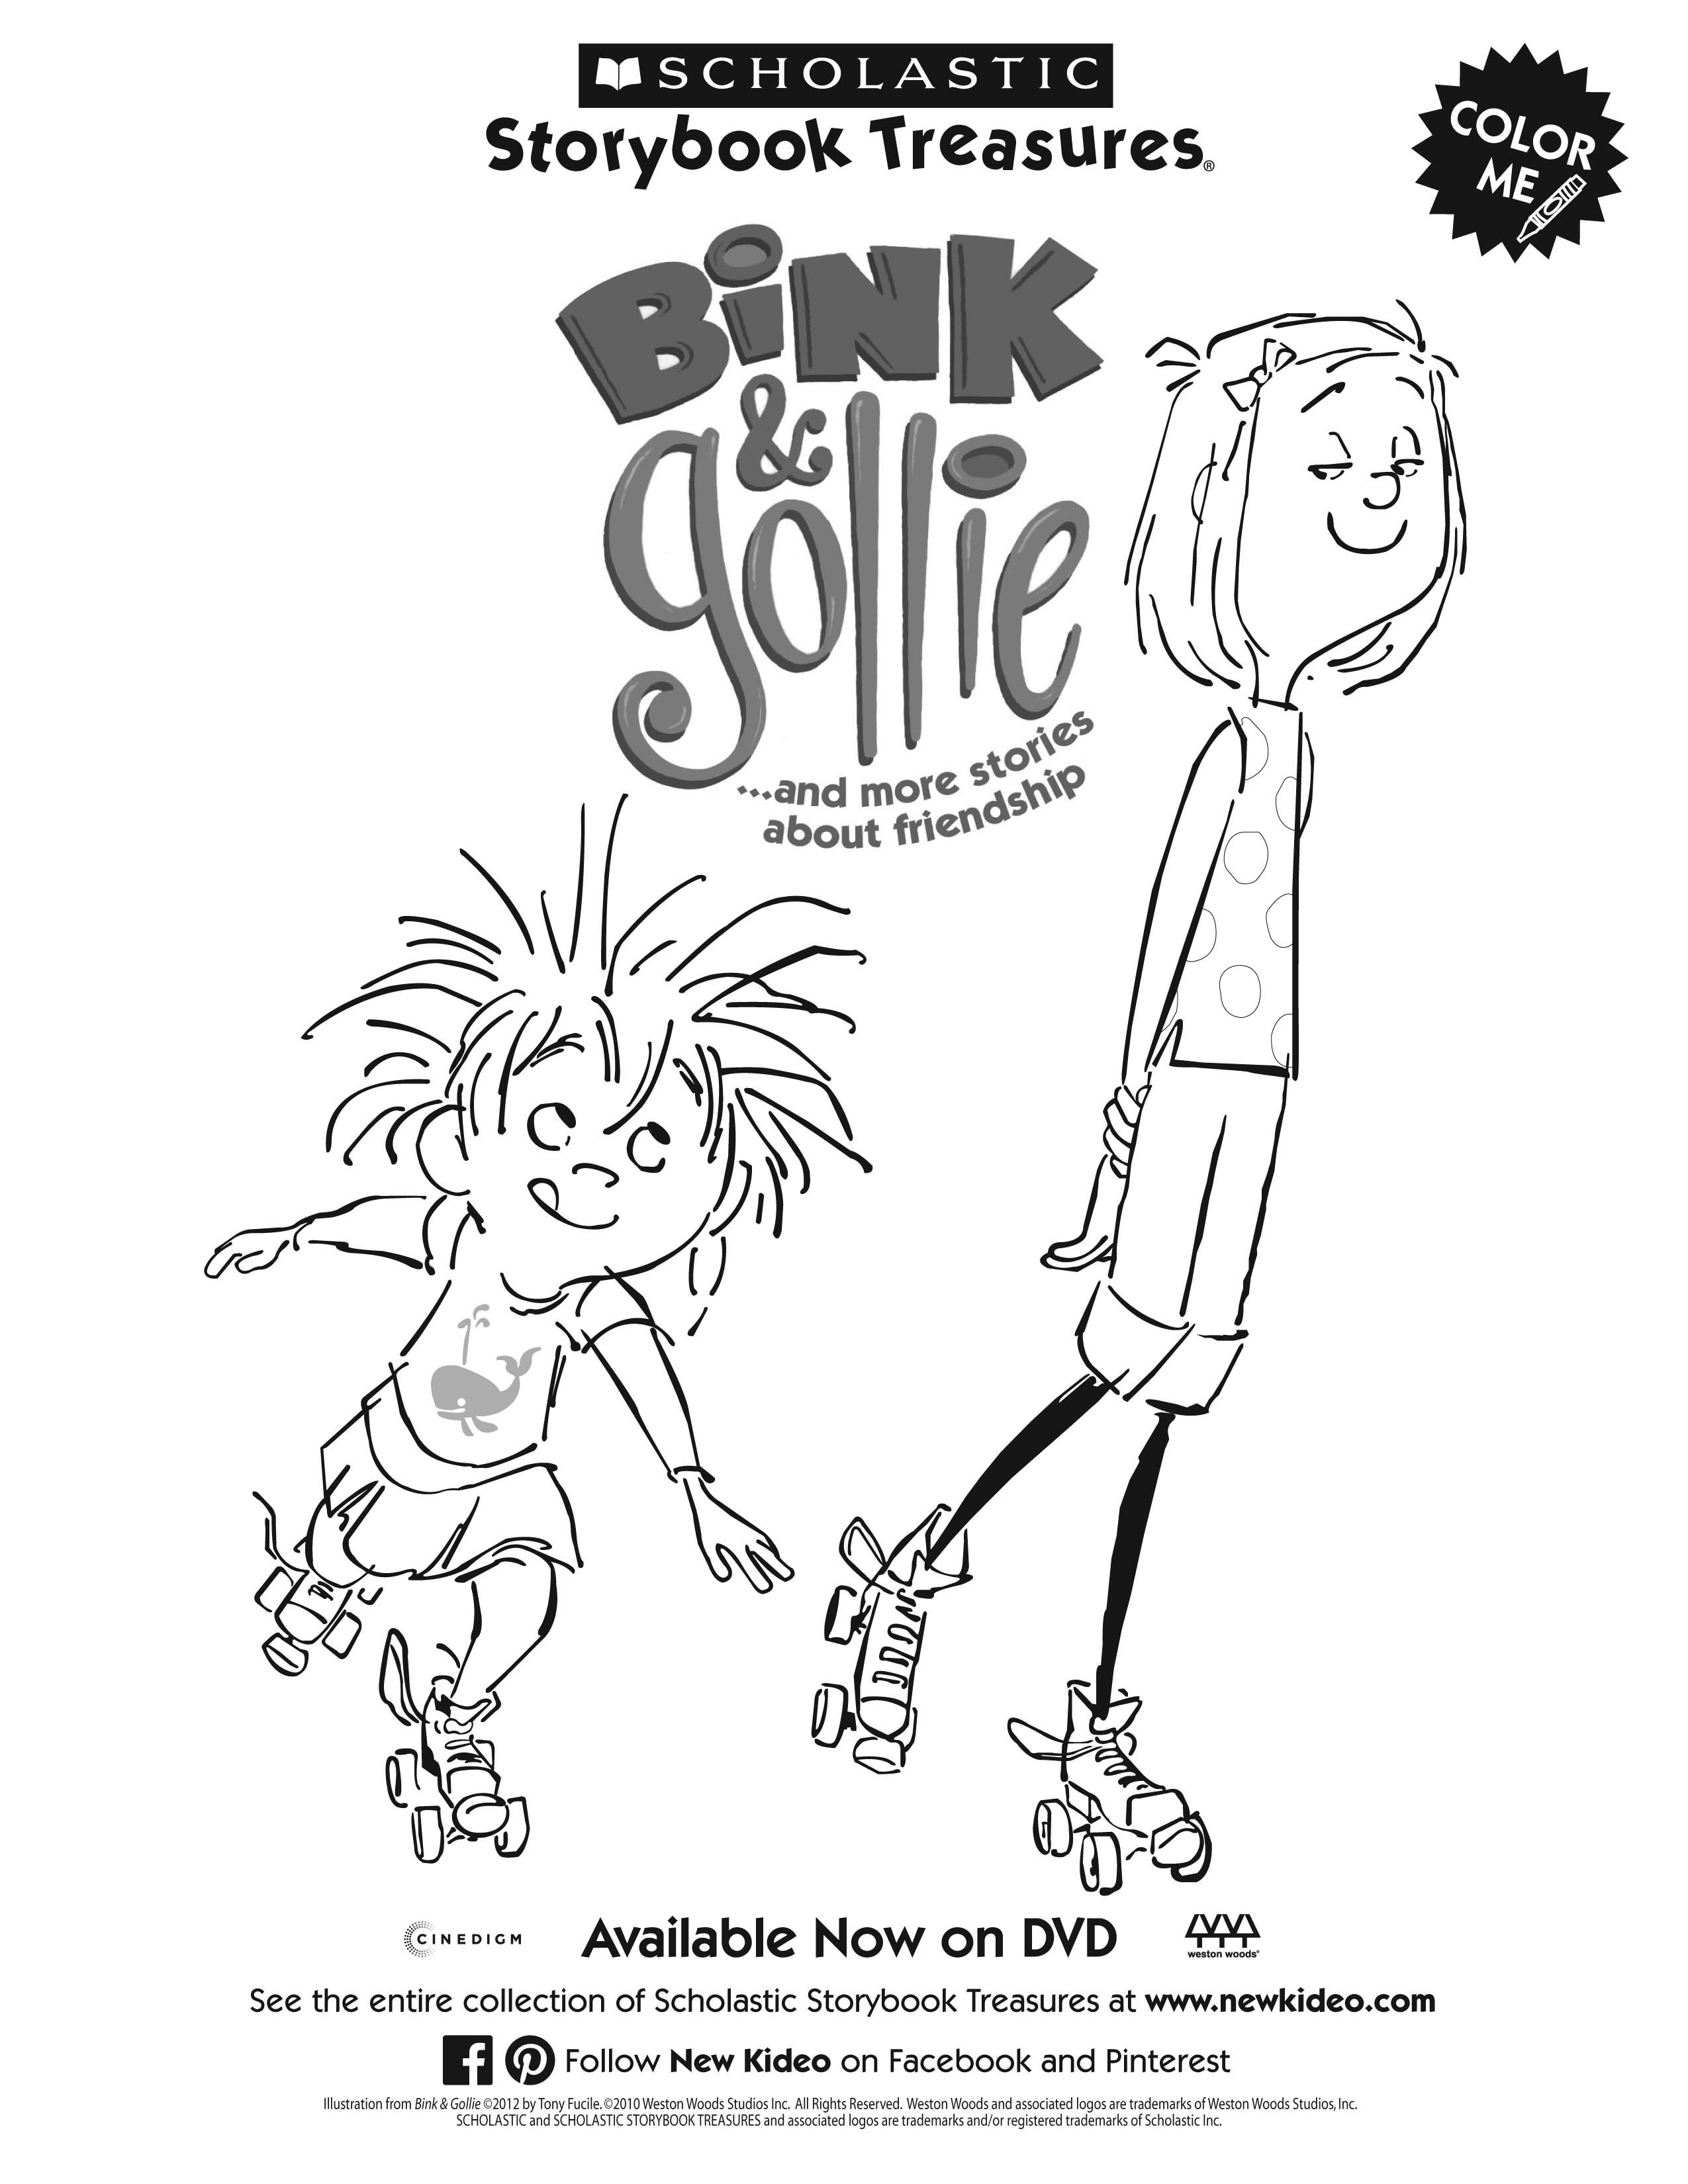 Bink & Gollie by Kate DiCamillo and Alison McGhee